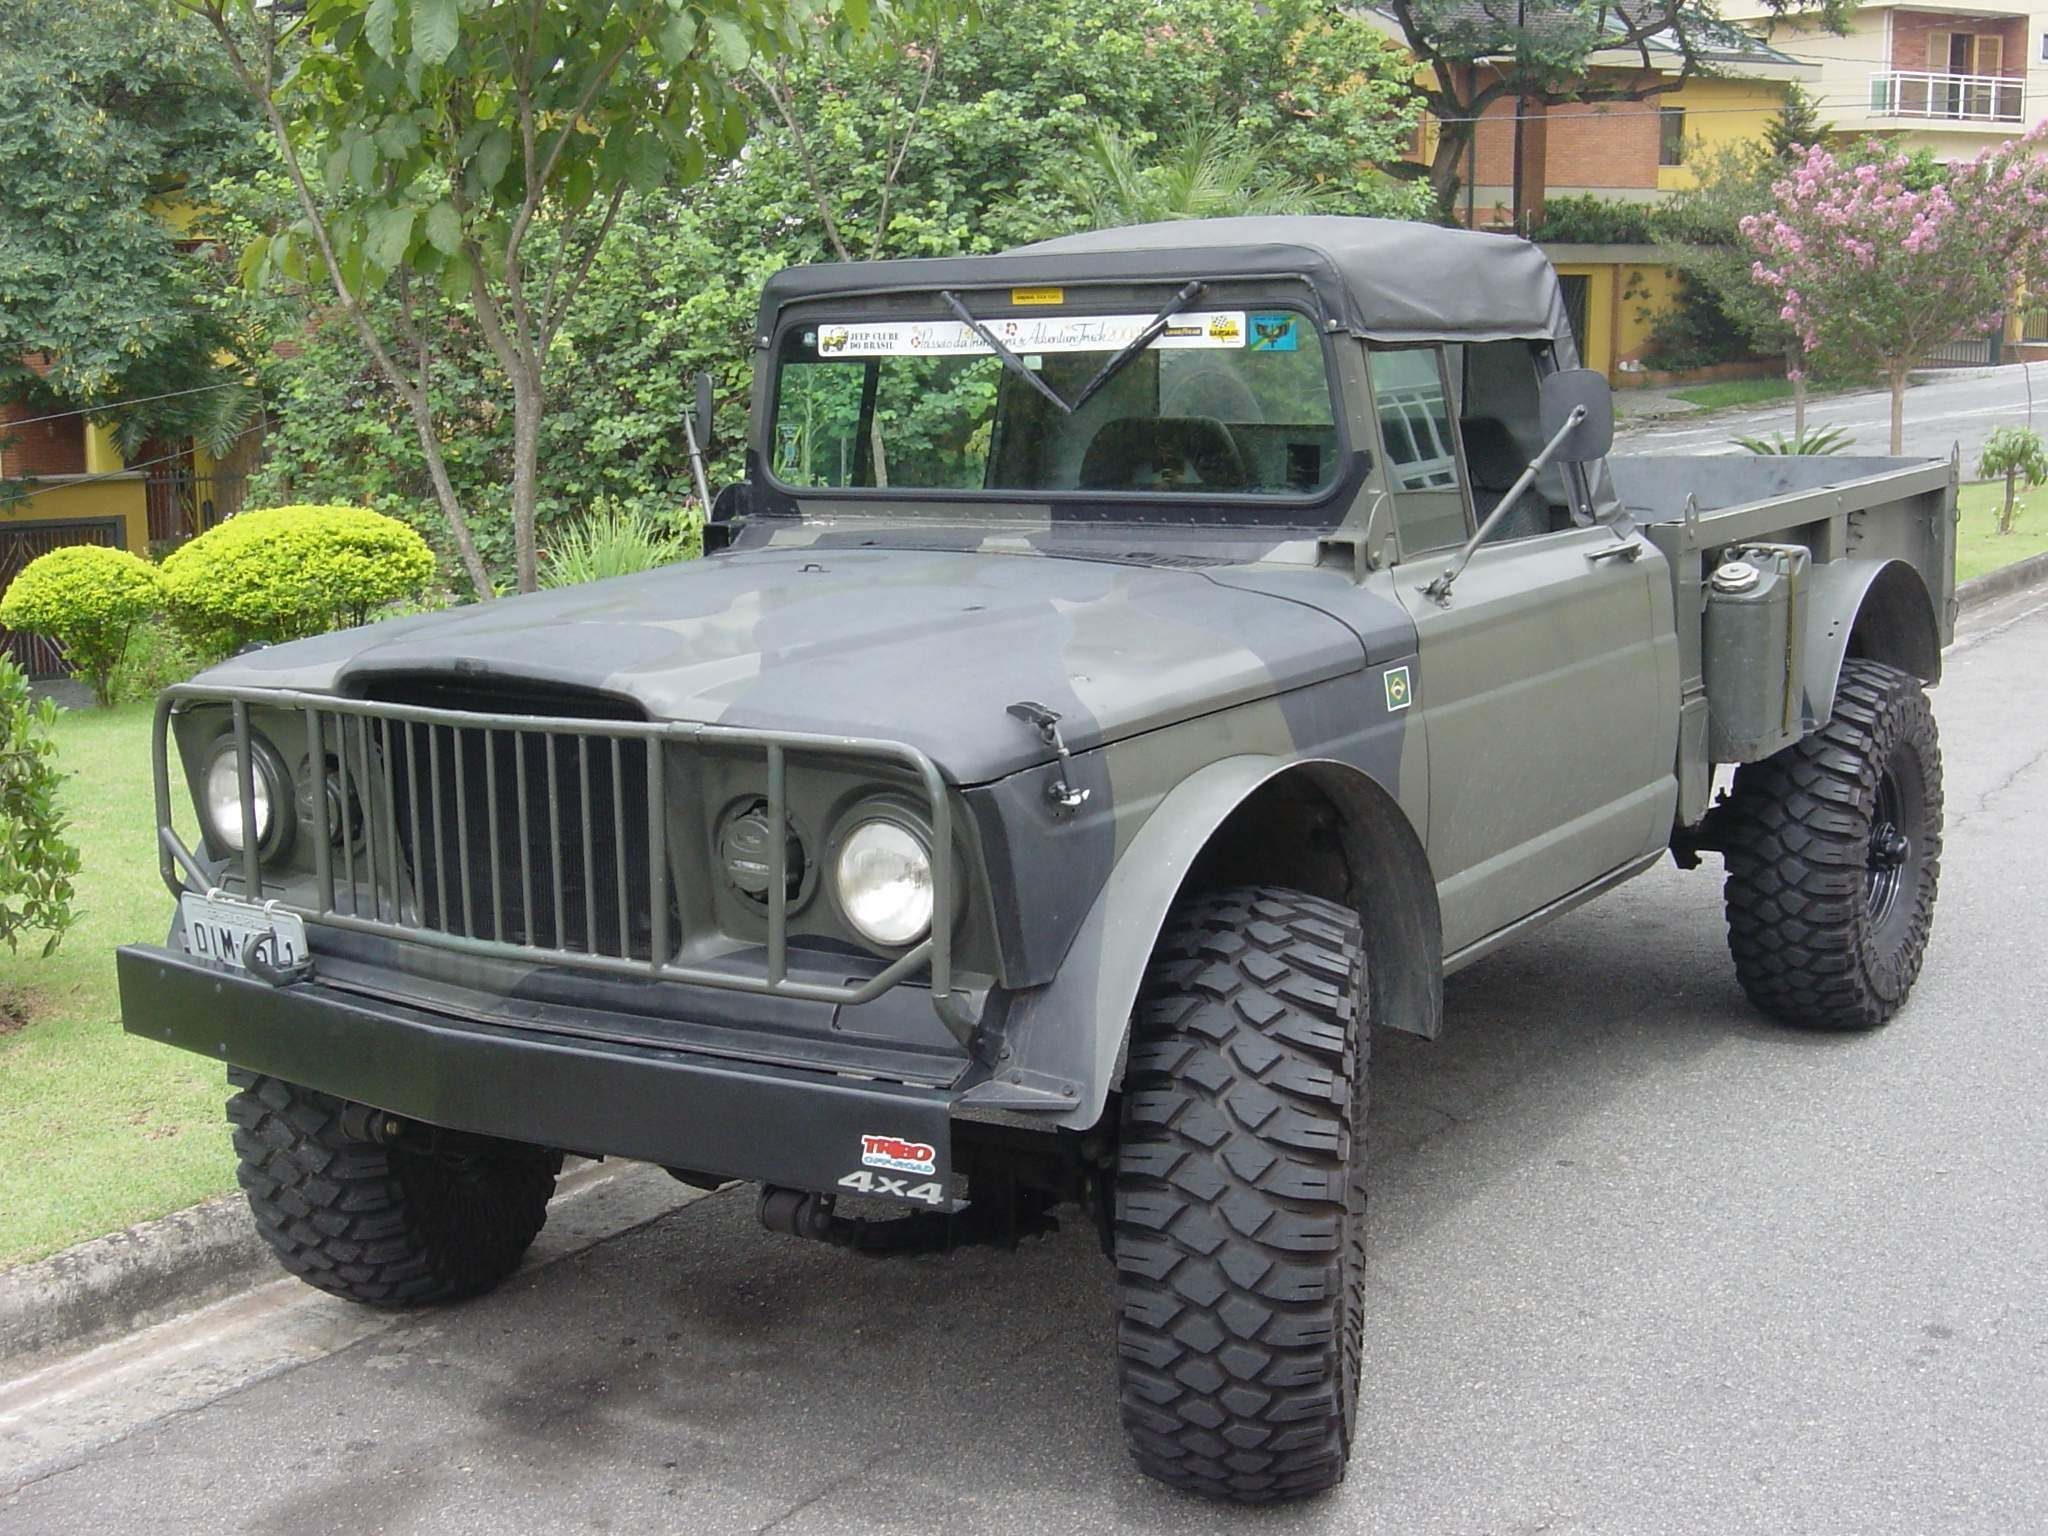 1967 kaiser military jeep m715 4x4 truck pickup army usmc for sale front cars trucks motorcycles pinterest usmc jeeps and 4x4